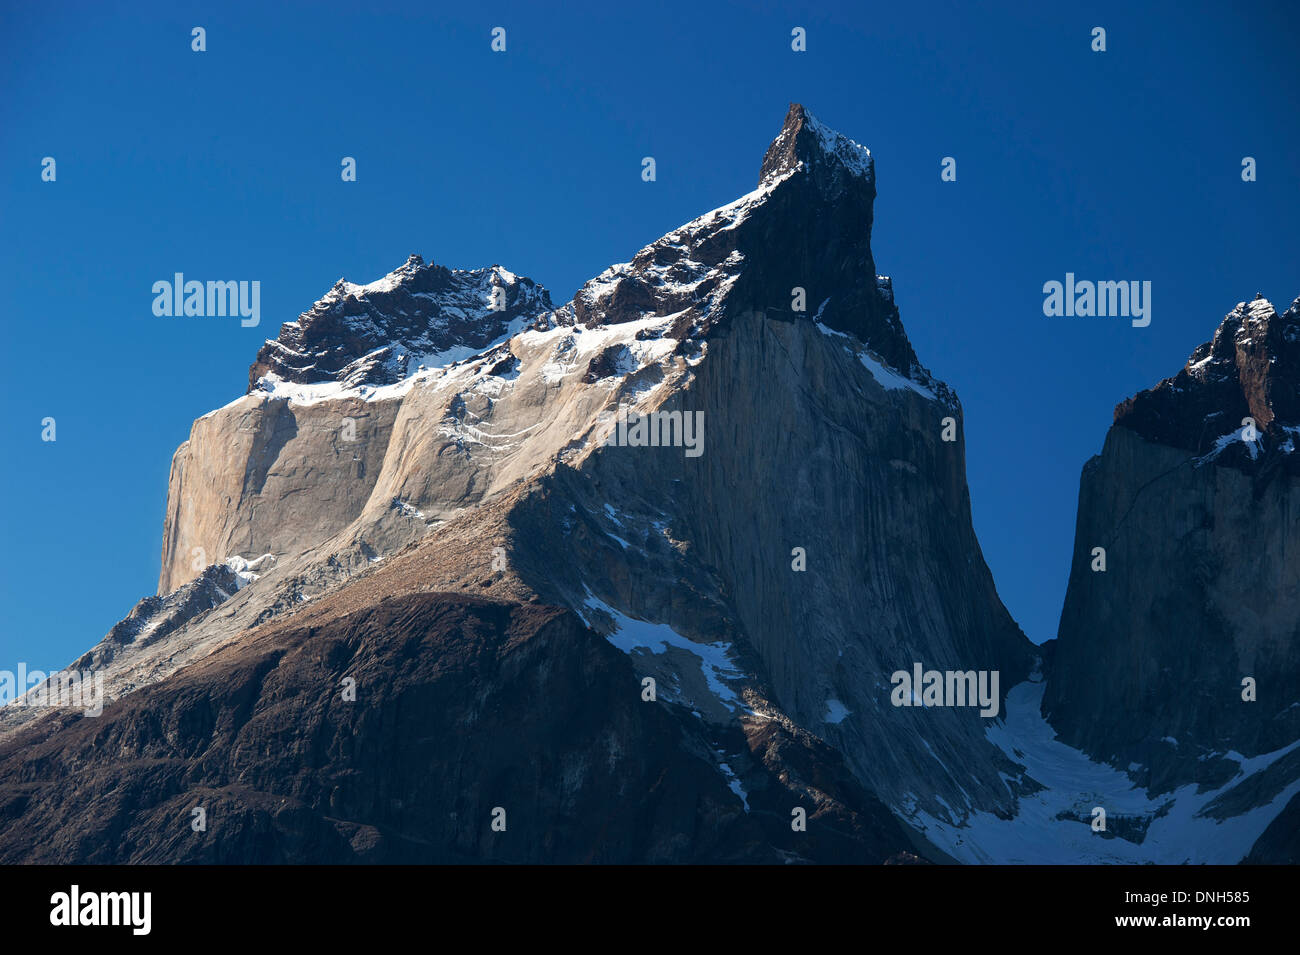 Sun-lit granite cliff in Torres del Paine national park - Stock Image